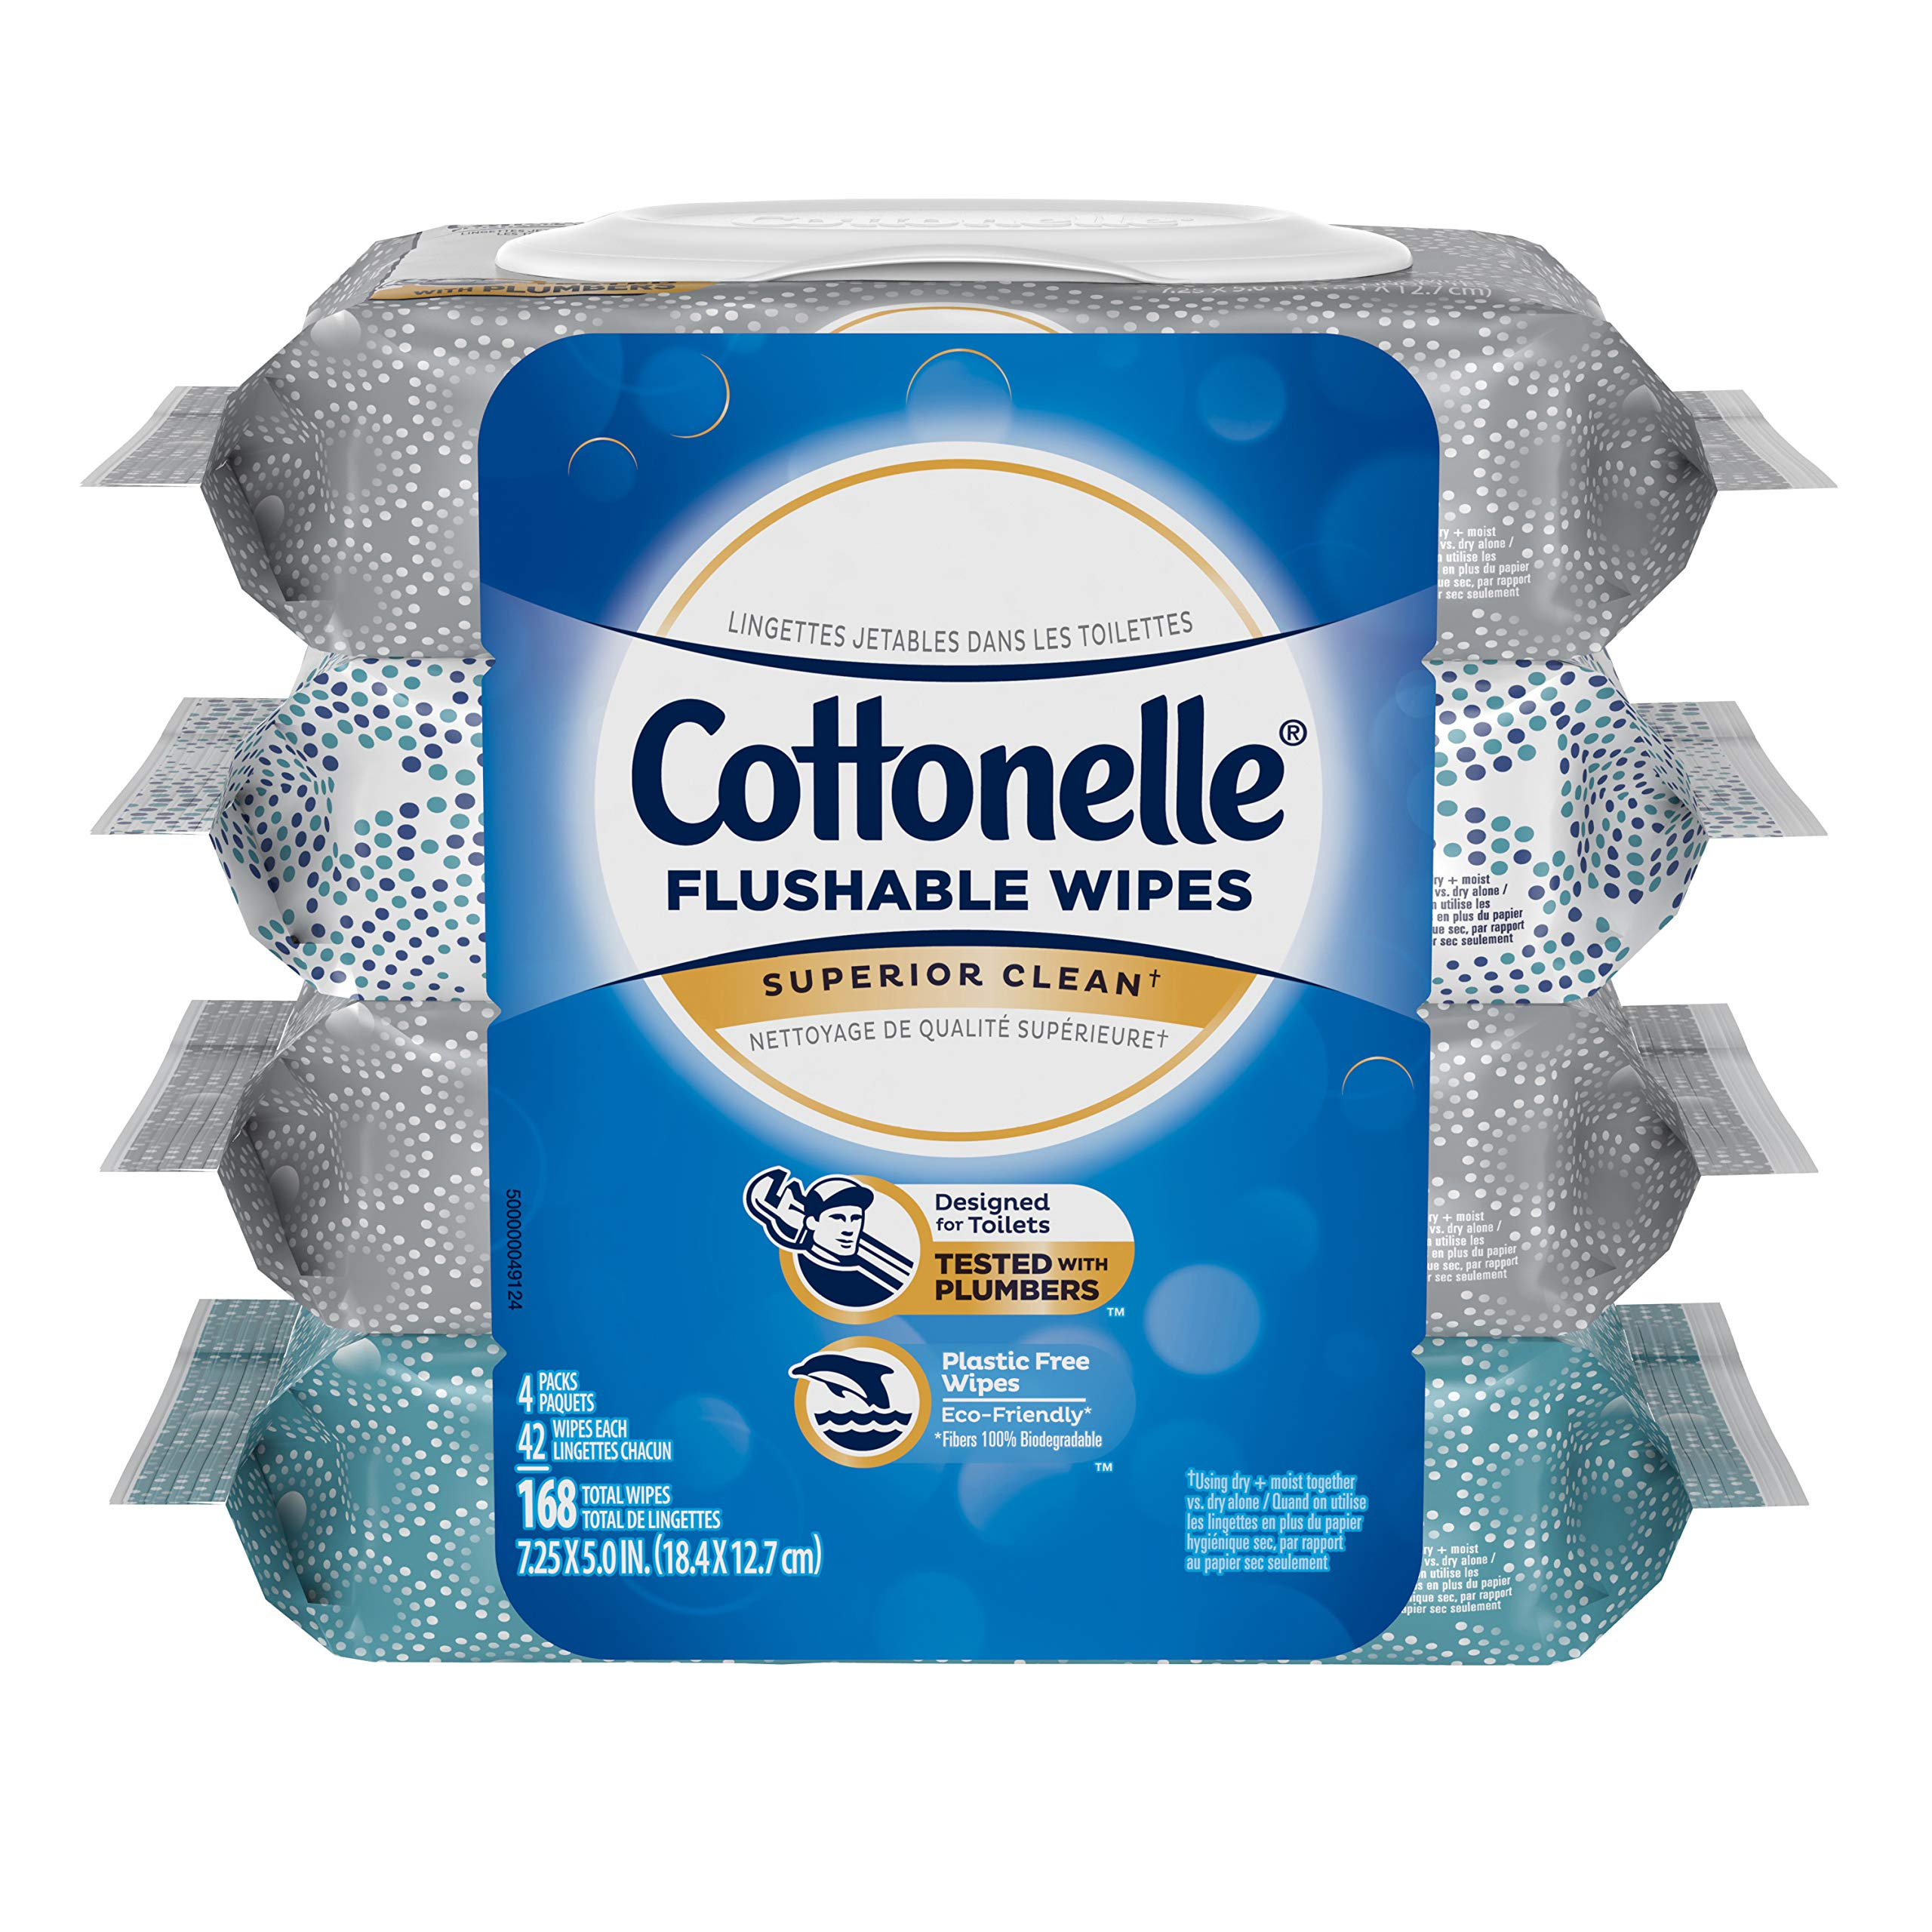 Cottonelle Flushable Wet Wipes, 168 Wipes per Pack, 4 packs, For Adults and Kids, Alcohol Free, Sewer Safe, Septic Safe product image